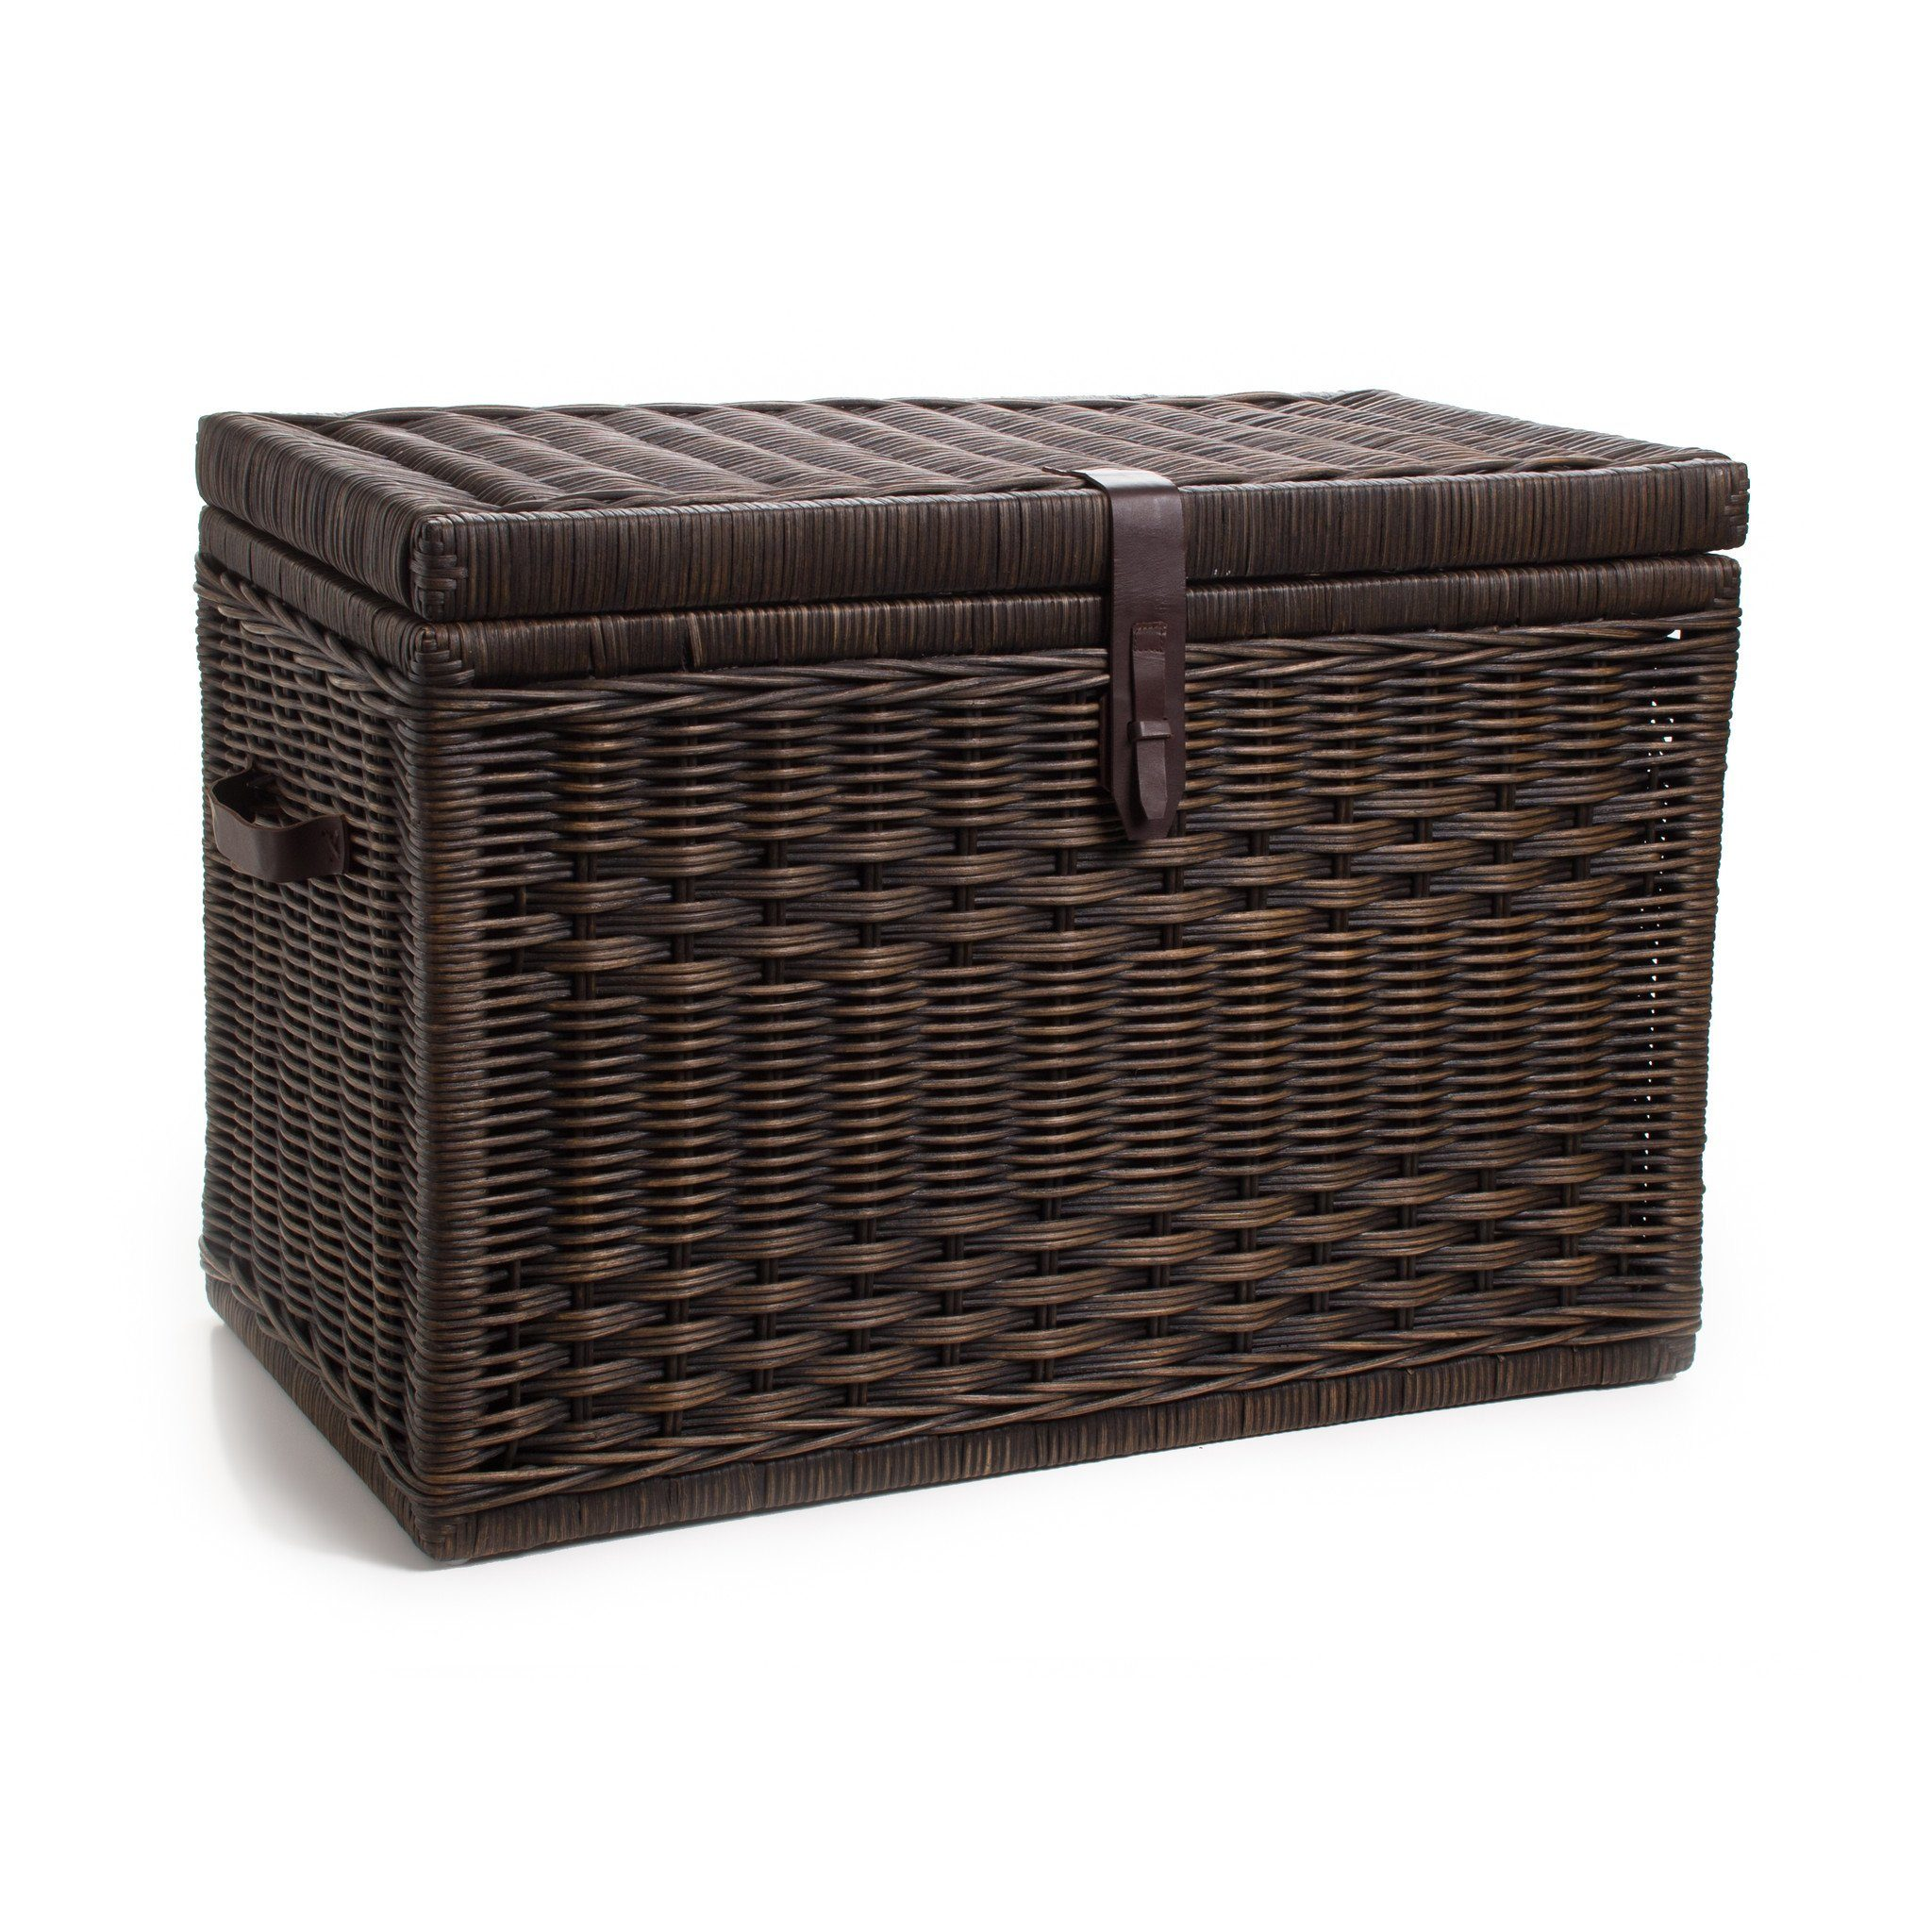 Superbe ... The Basket Lady Wicker Storage Trunk ...